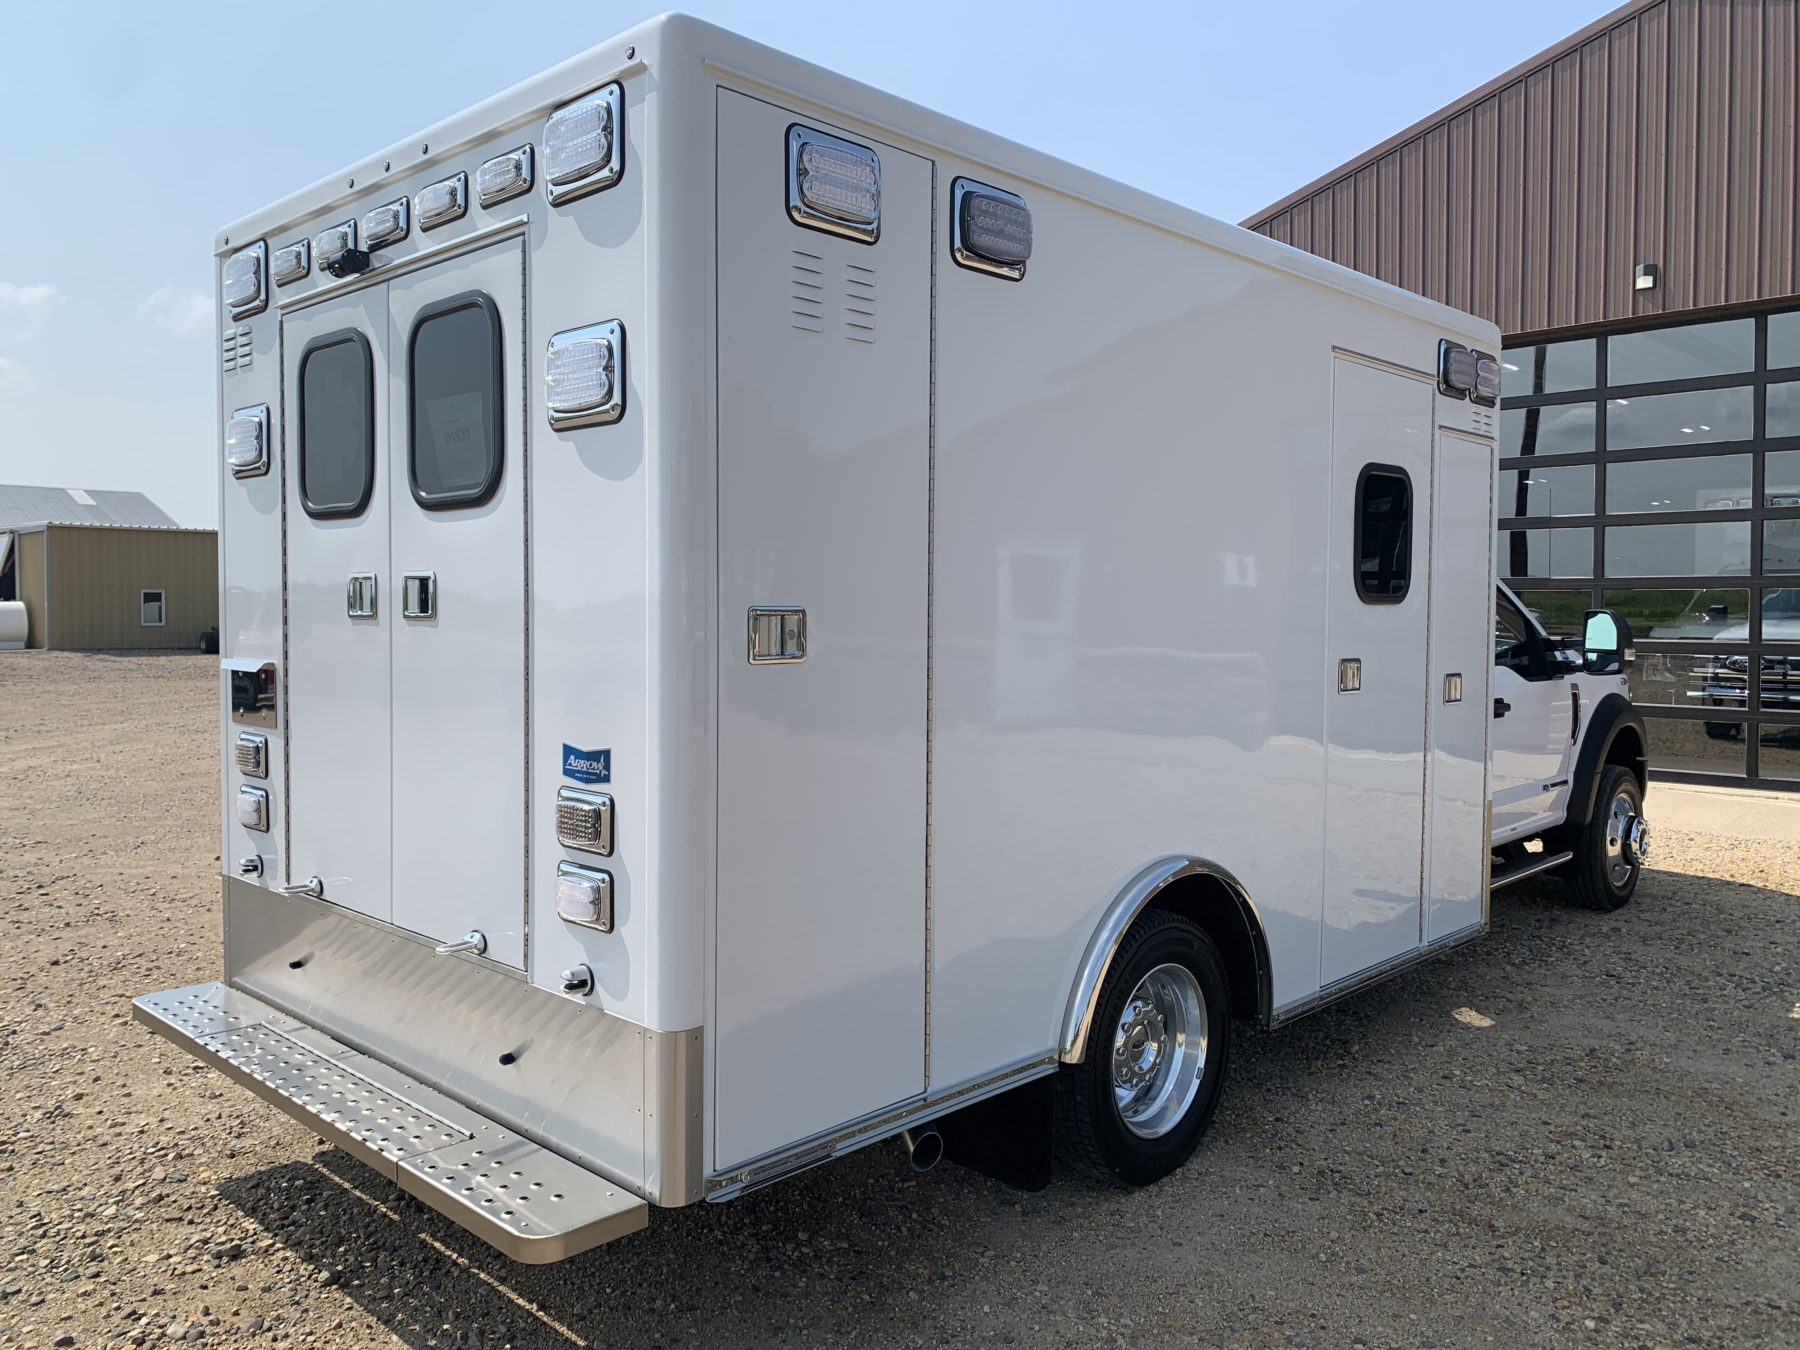 2021 Ford F550 4x4 Heavy Duty Ambulance For Sale – Picture 13